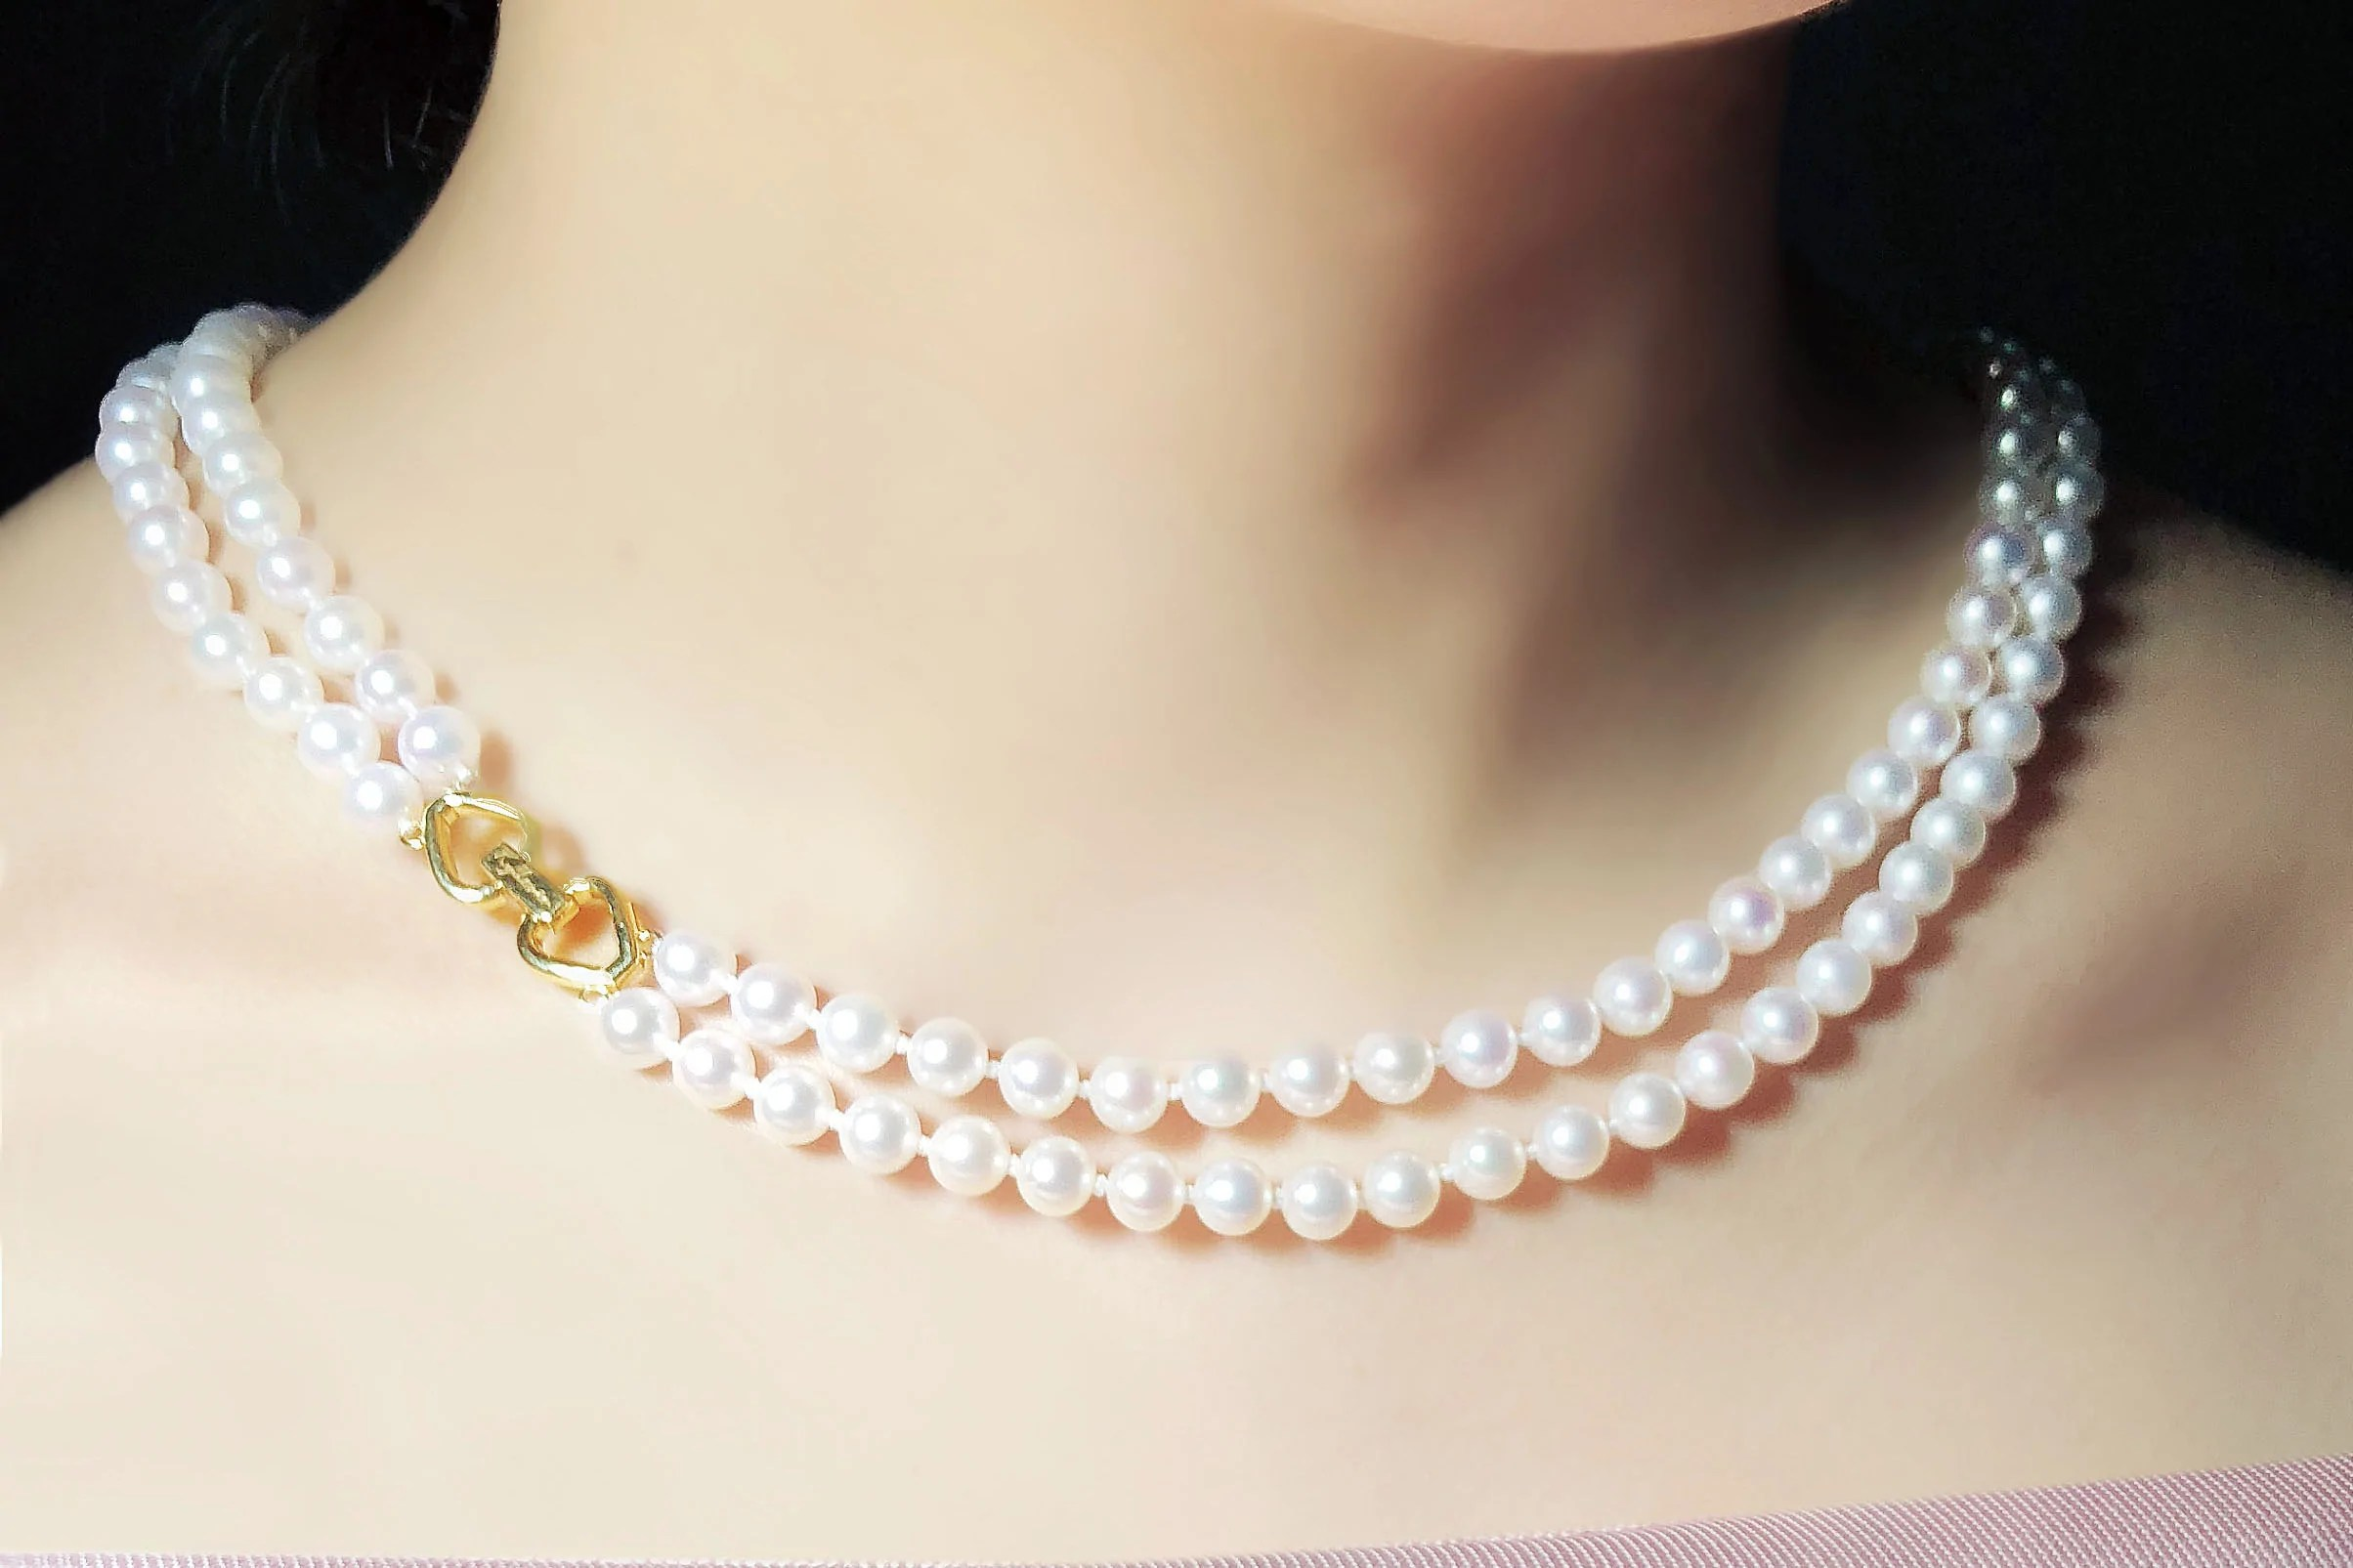 The facts about pearl - Telugu fashion news